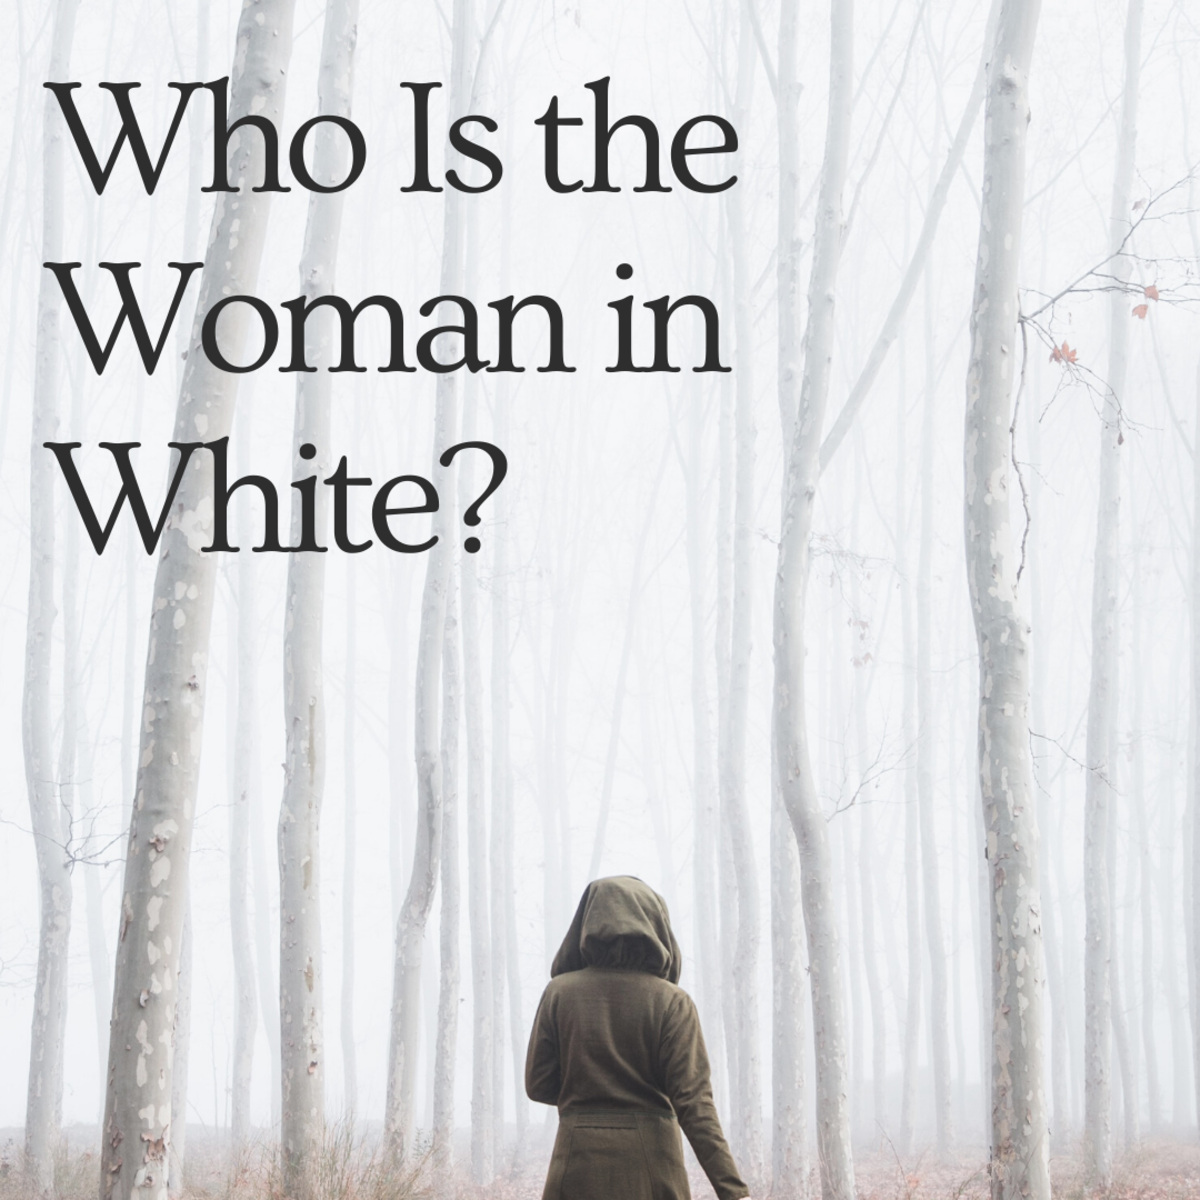 How the Woman in White Legend Varies Across Cultures